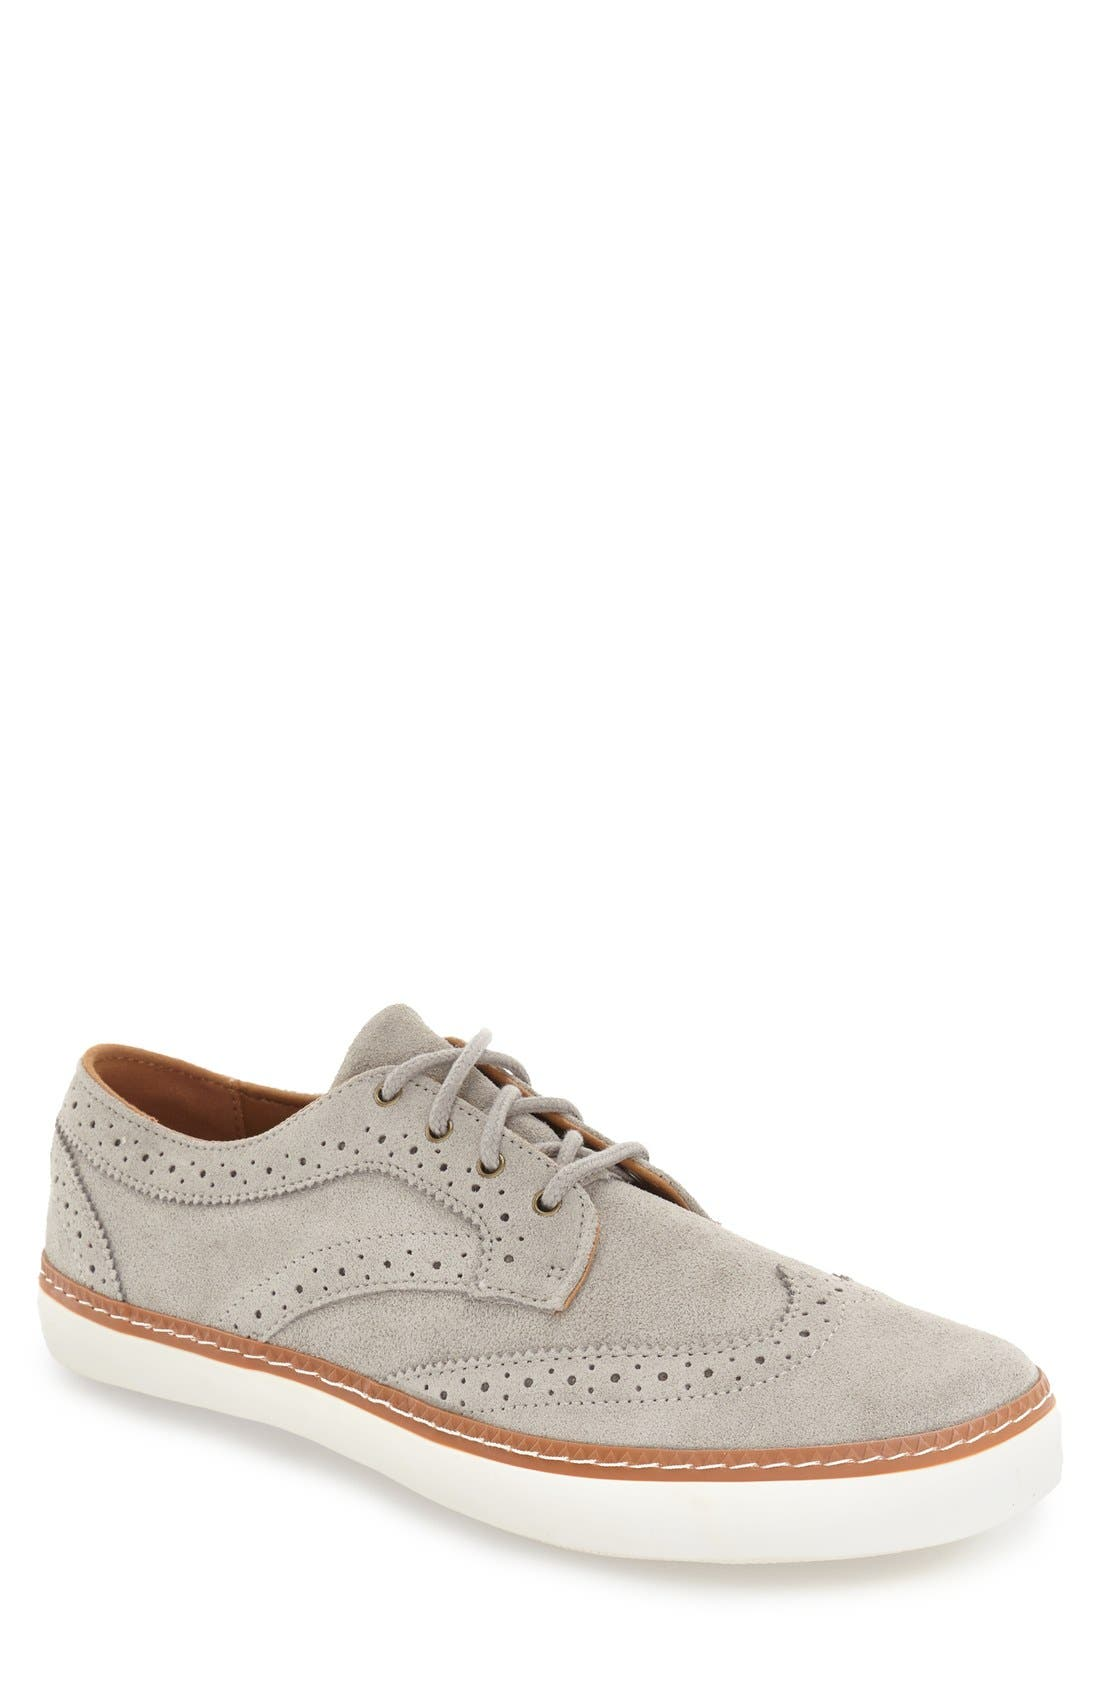 'Novello' Wingtip Sneaker,                             Main thumbnail 1, color,                             020